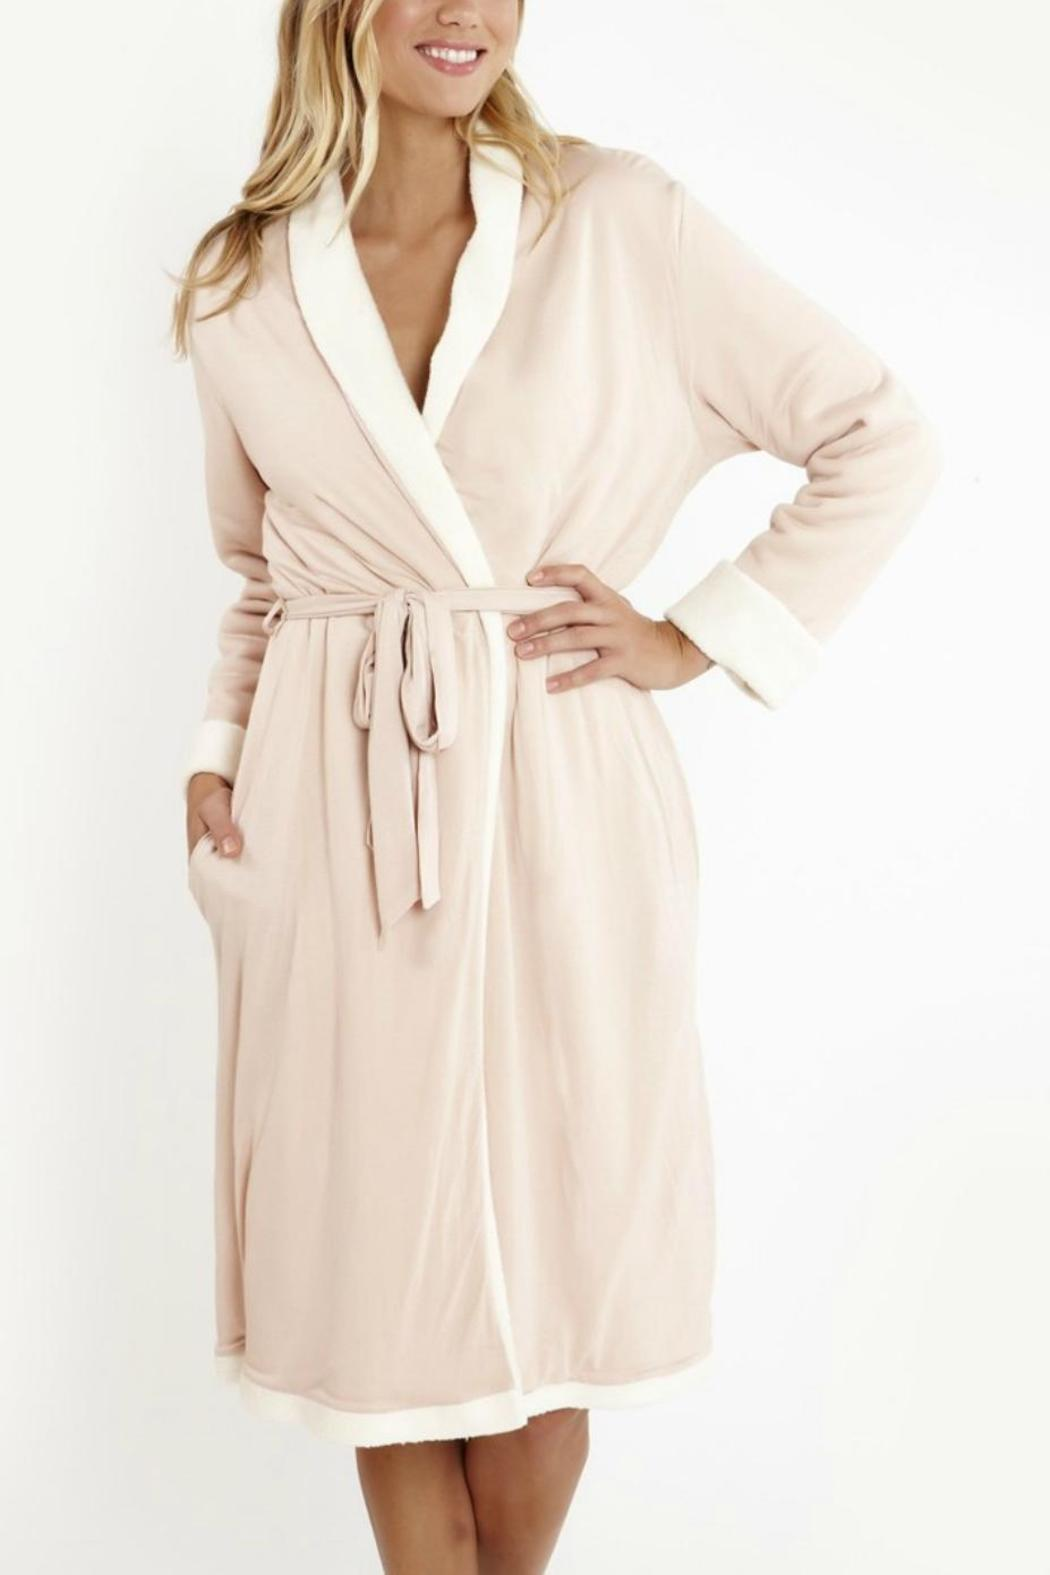 Alpine Chic Aspen Robe